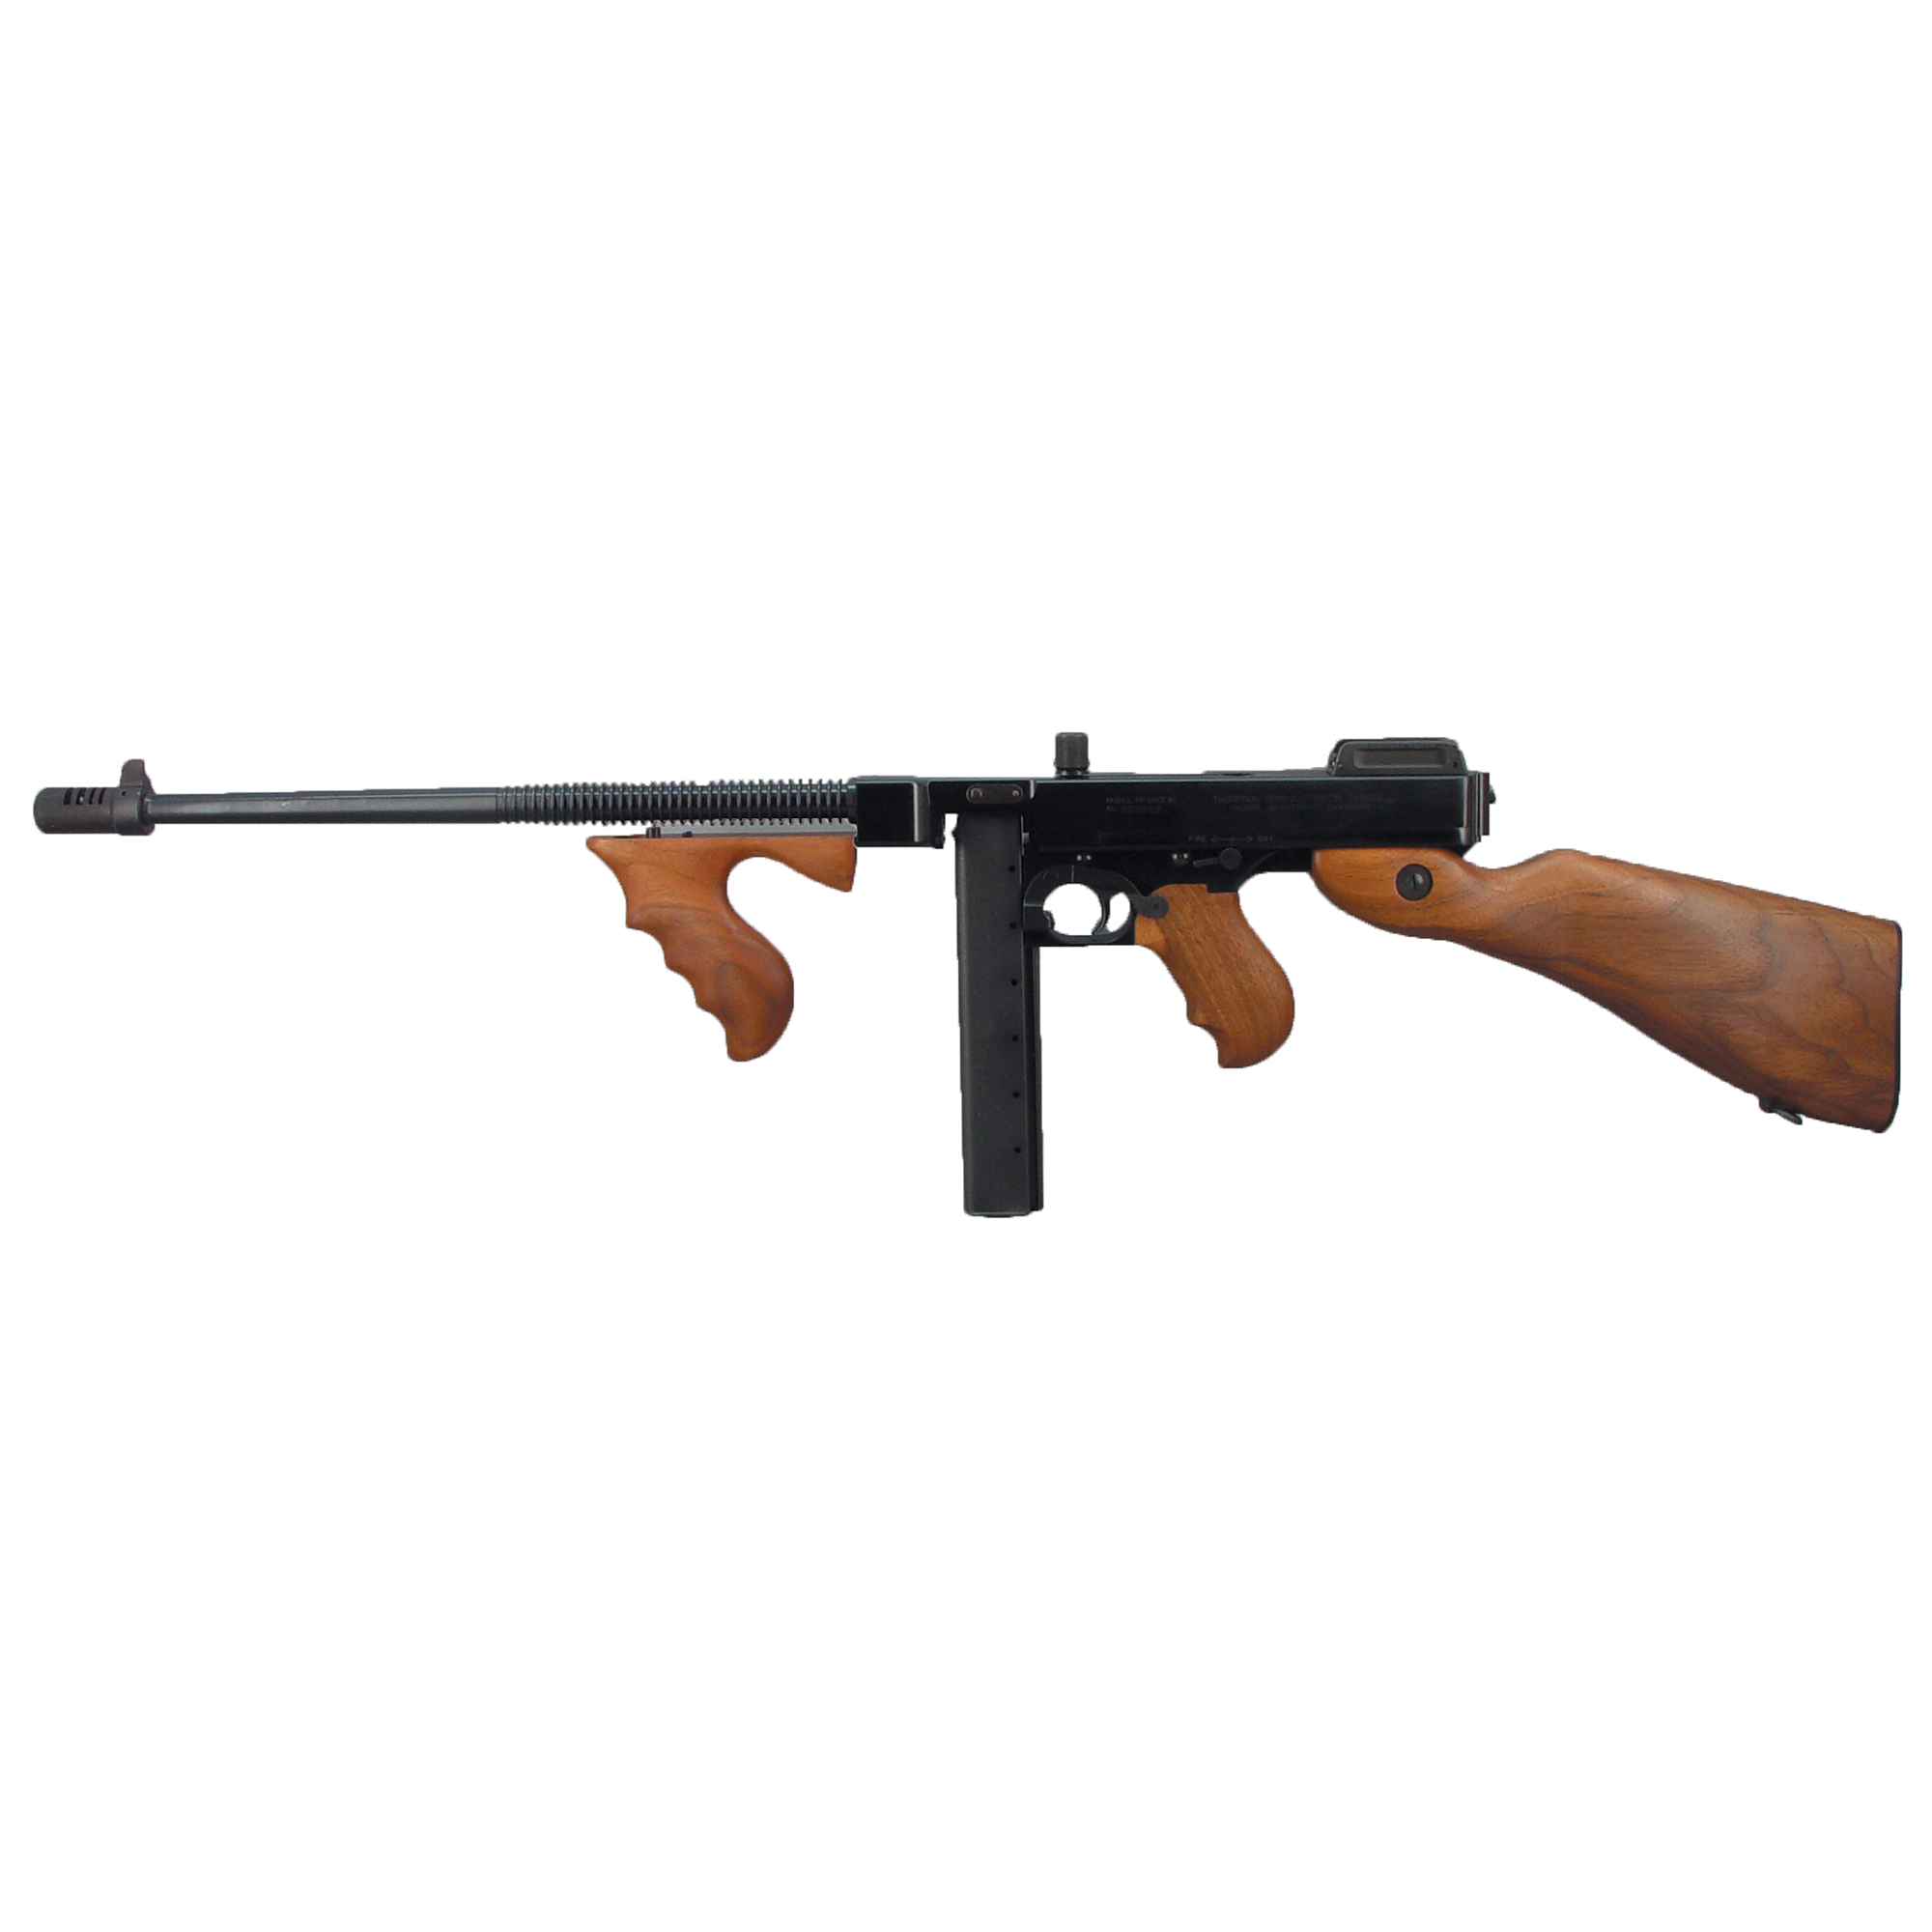 "For more than 100 years"" the ""Chicago Typewriter(R)"" has been a favorite among collectors and shooting enthusiasts. The Tommy Gun is available with a steel receiver (T1 models) or a lighter weight aluminum receiver (T5 models)."